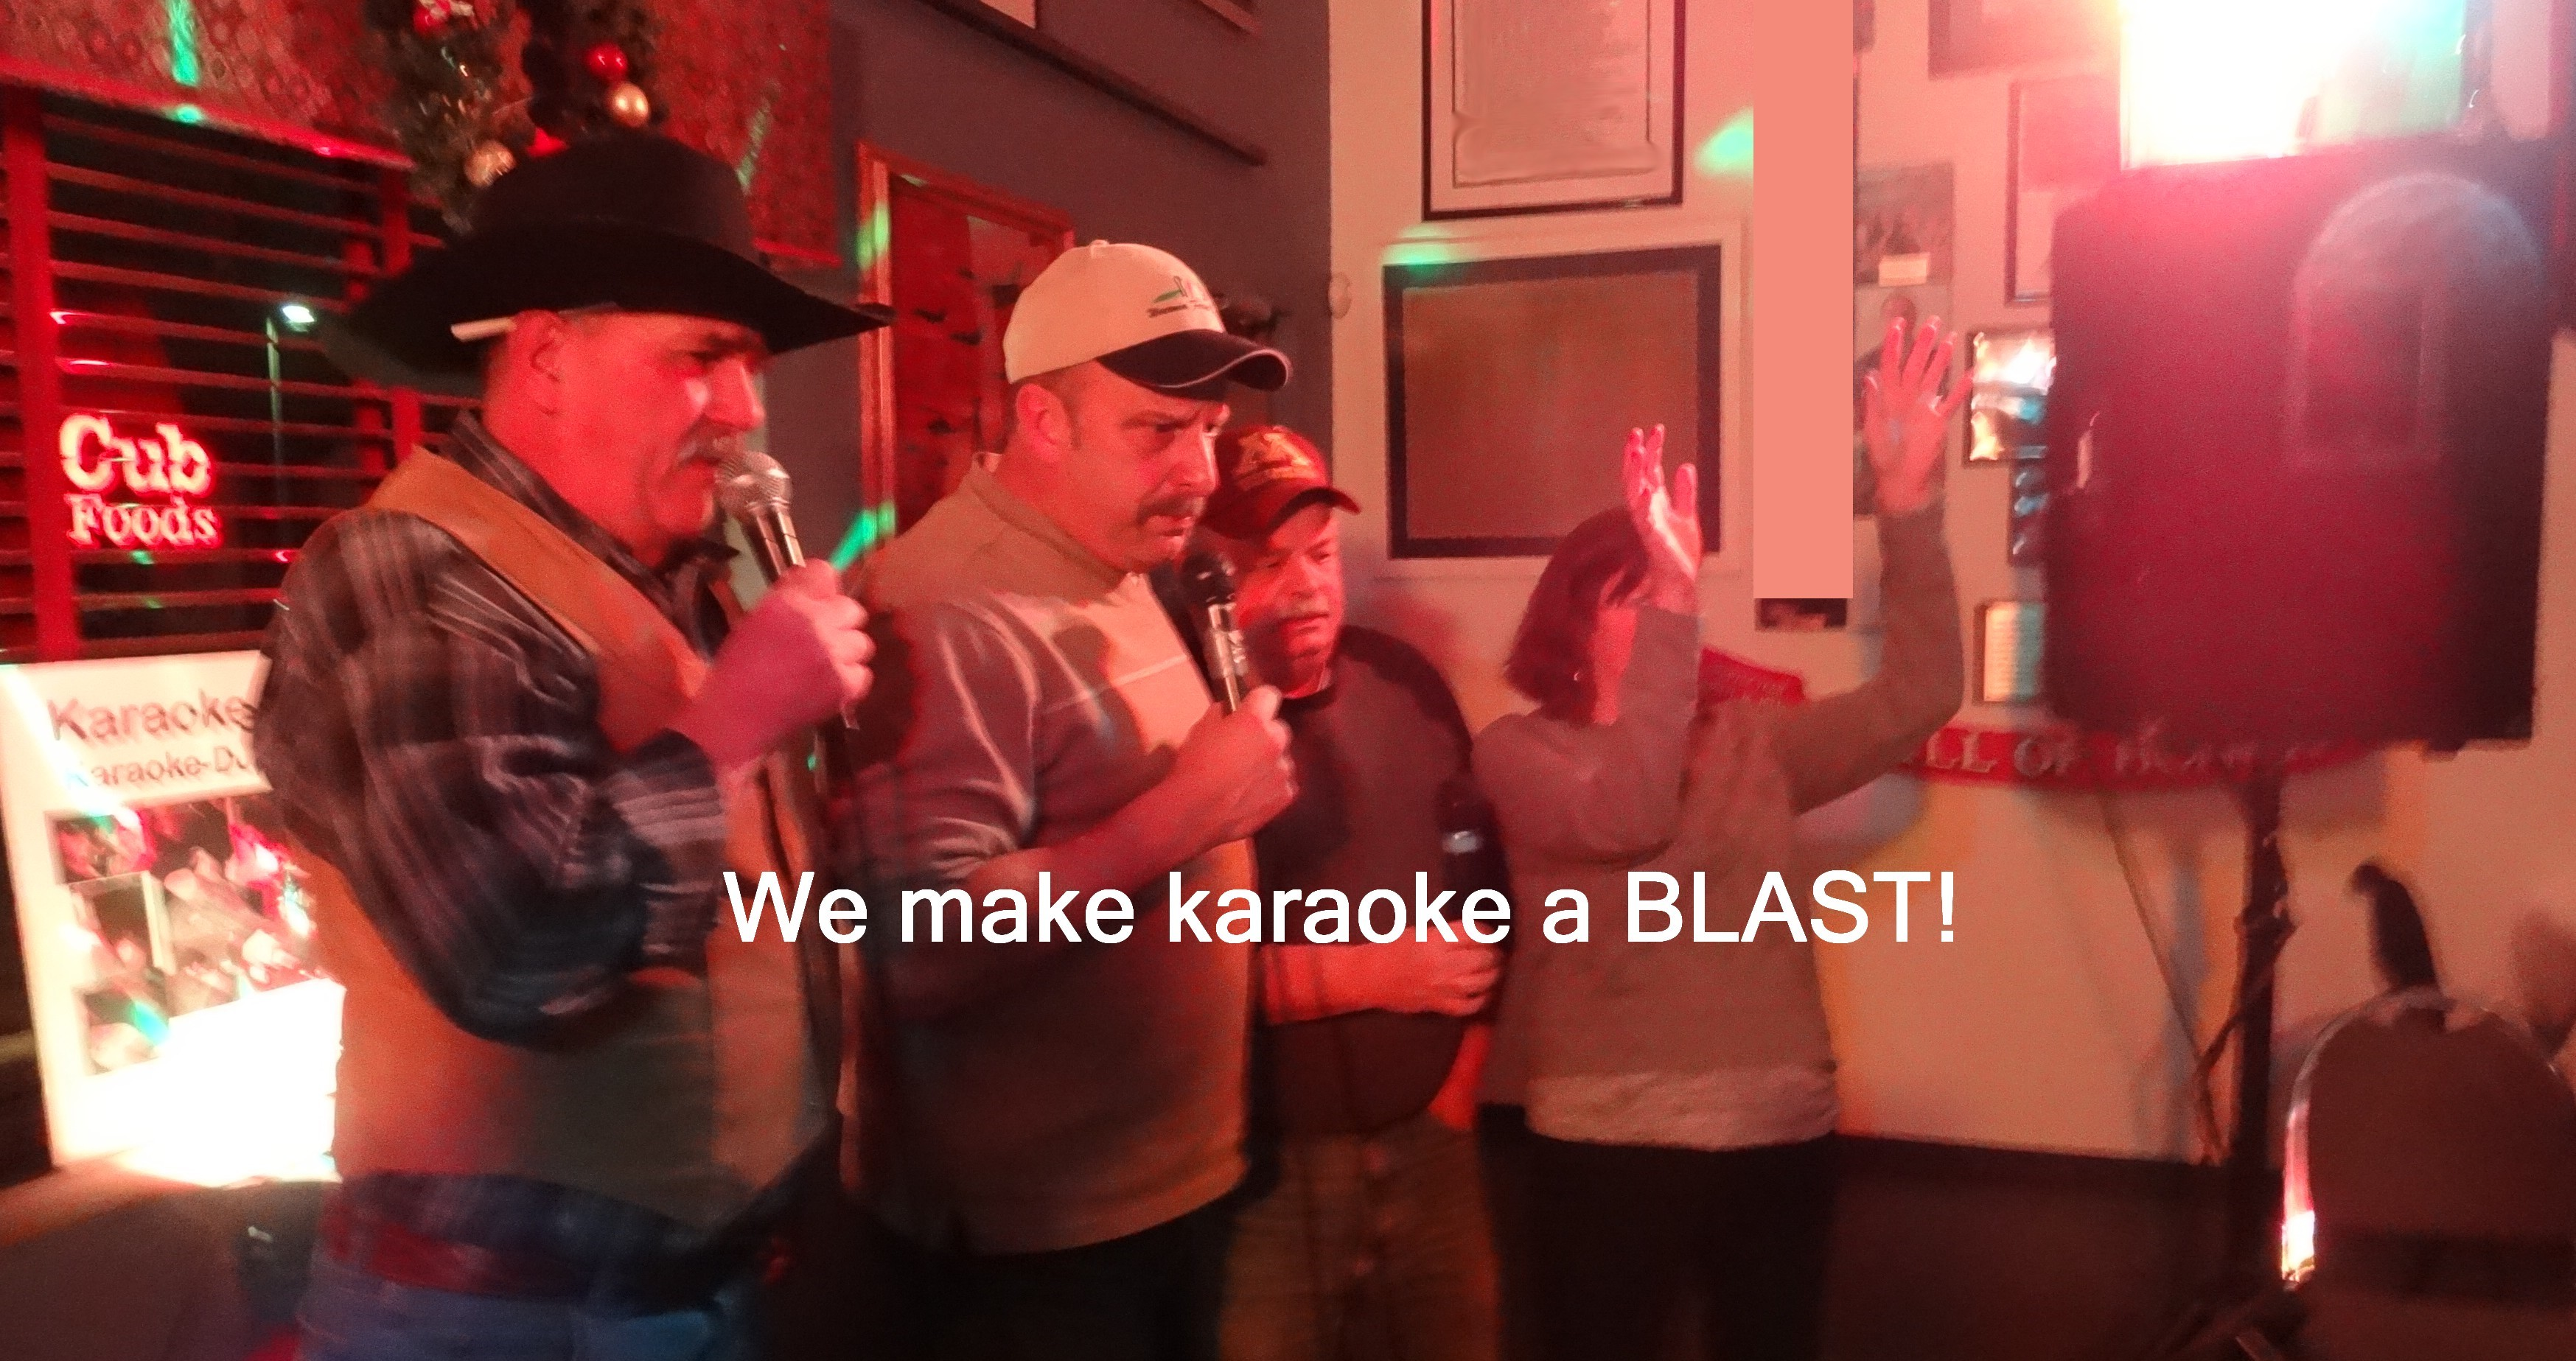 karaoke fun group singalongs